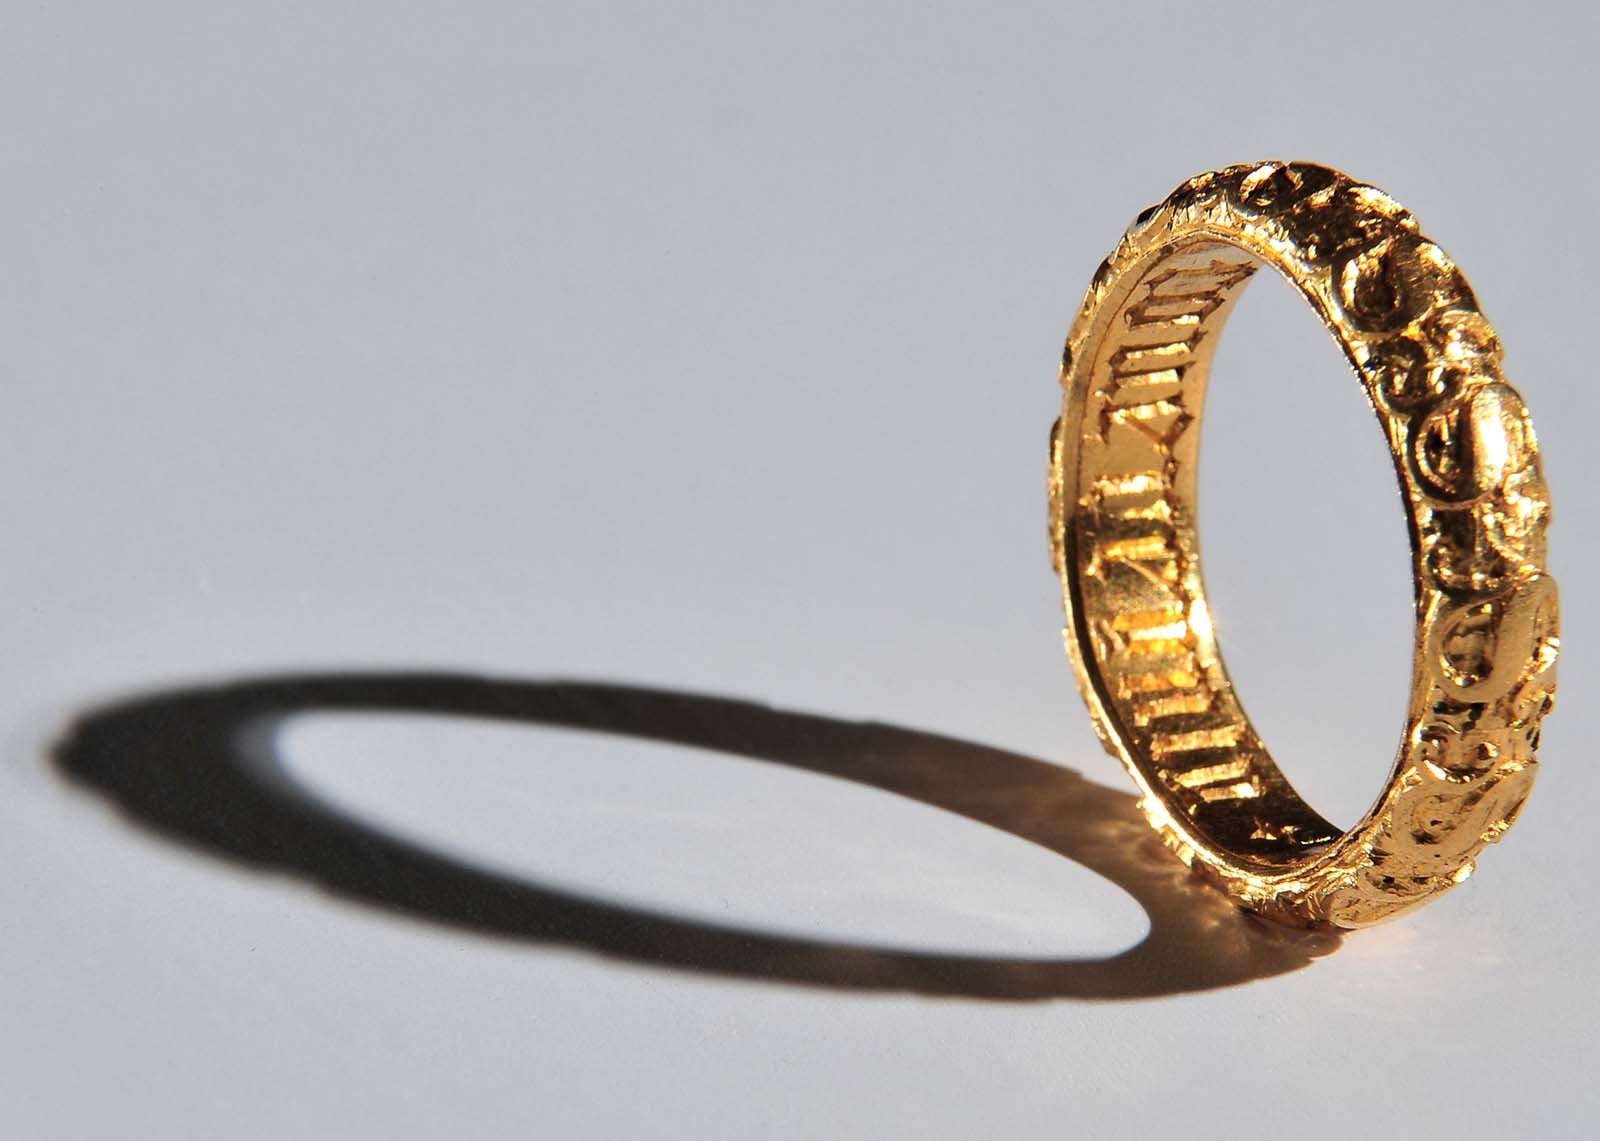 Photo of an engraved gold ring